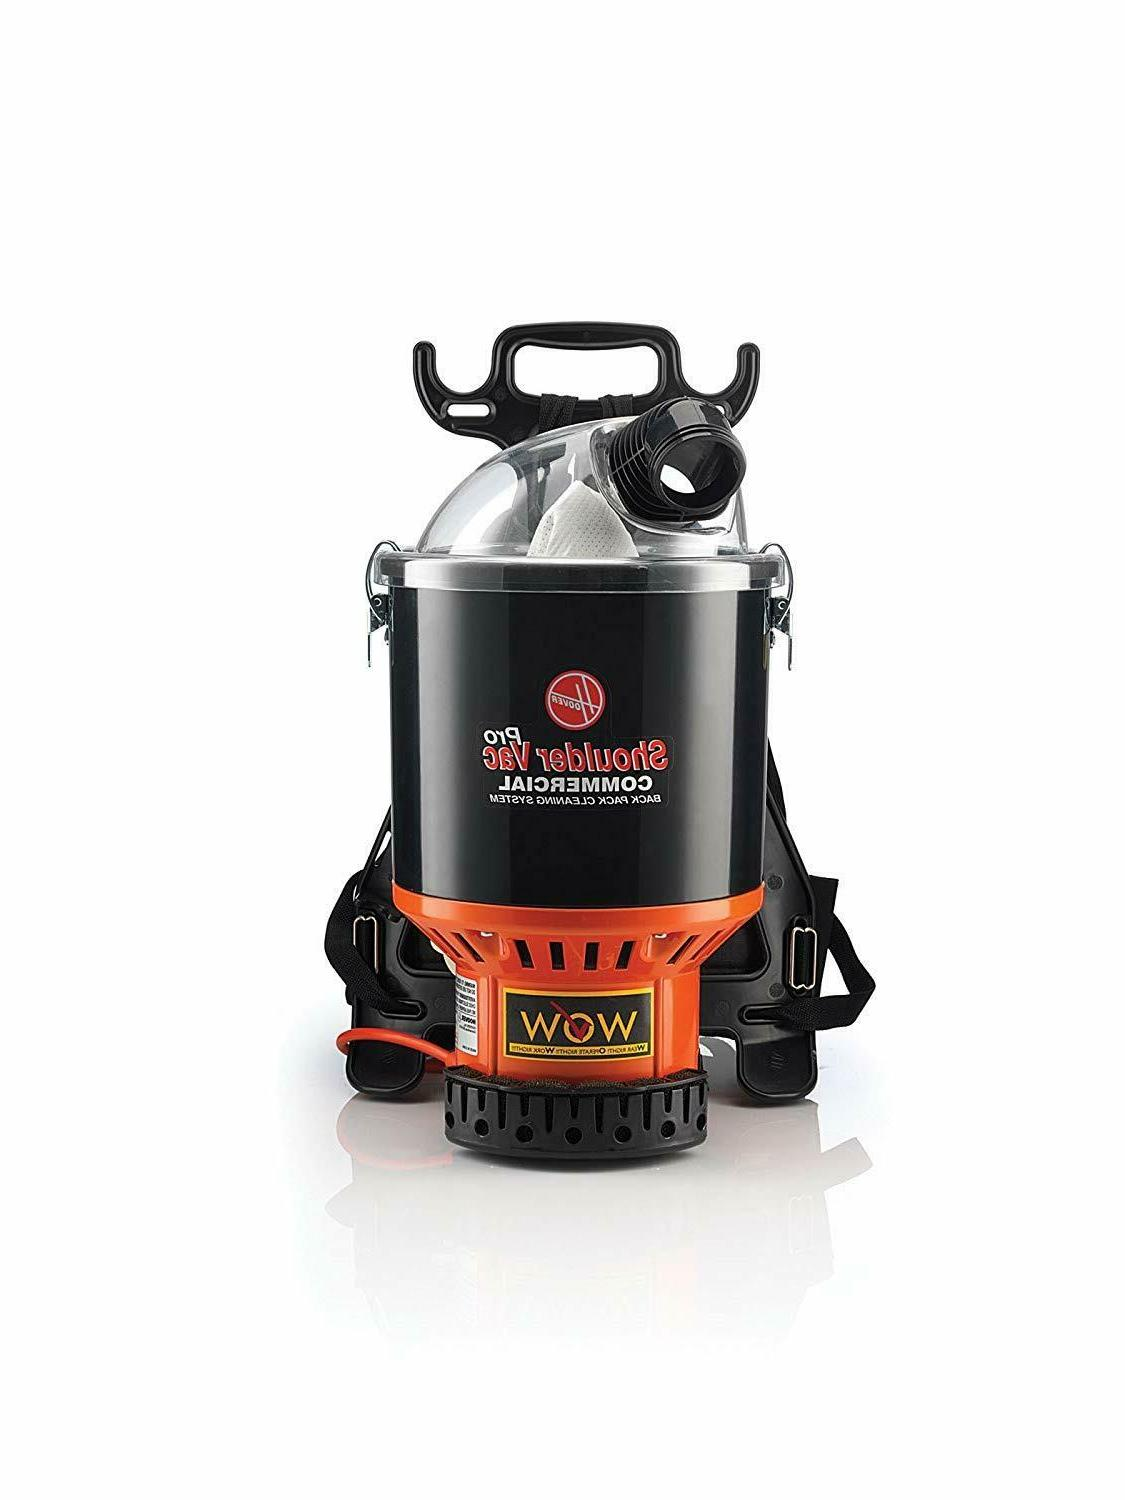 BackPack Vacuum Cleaner Commercial Canister Industrial Hardw